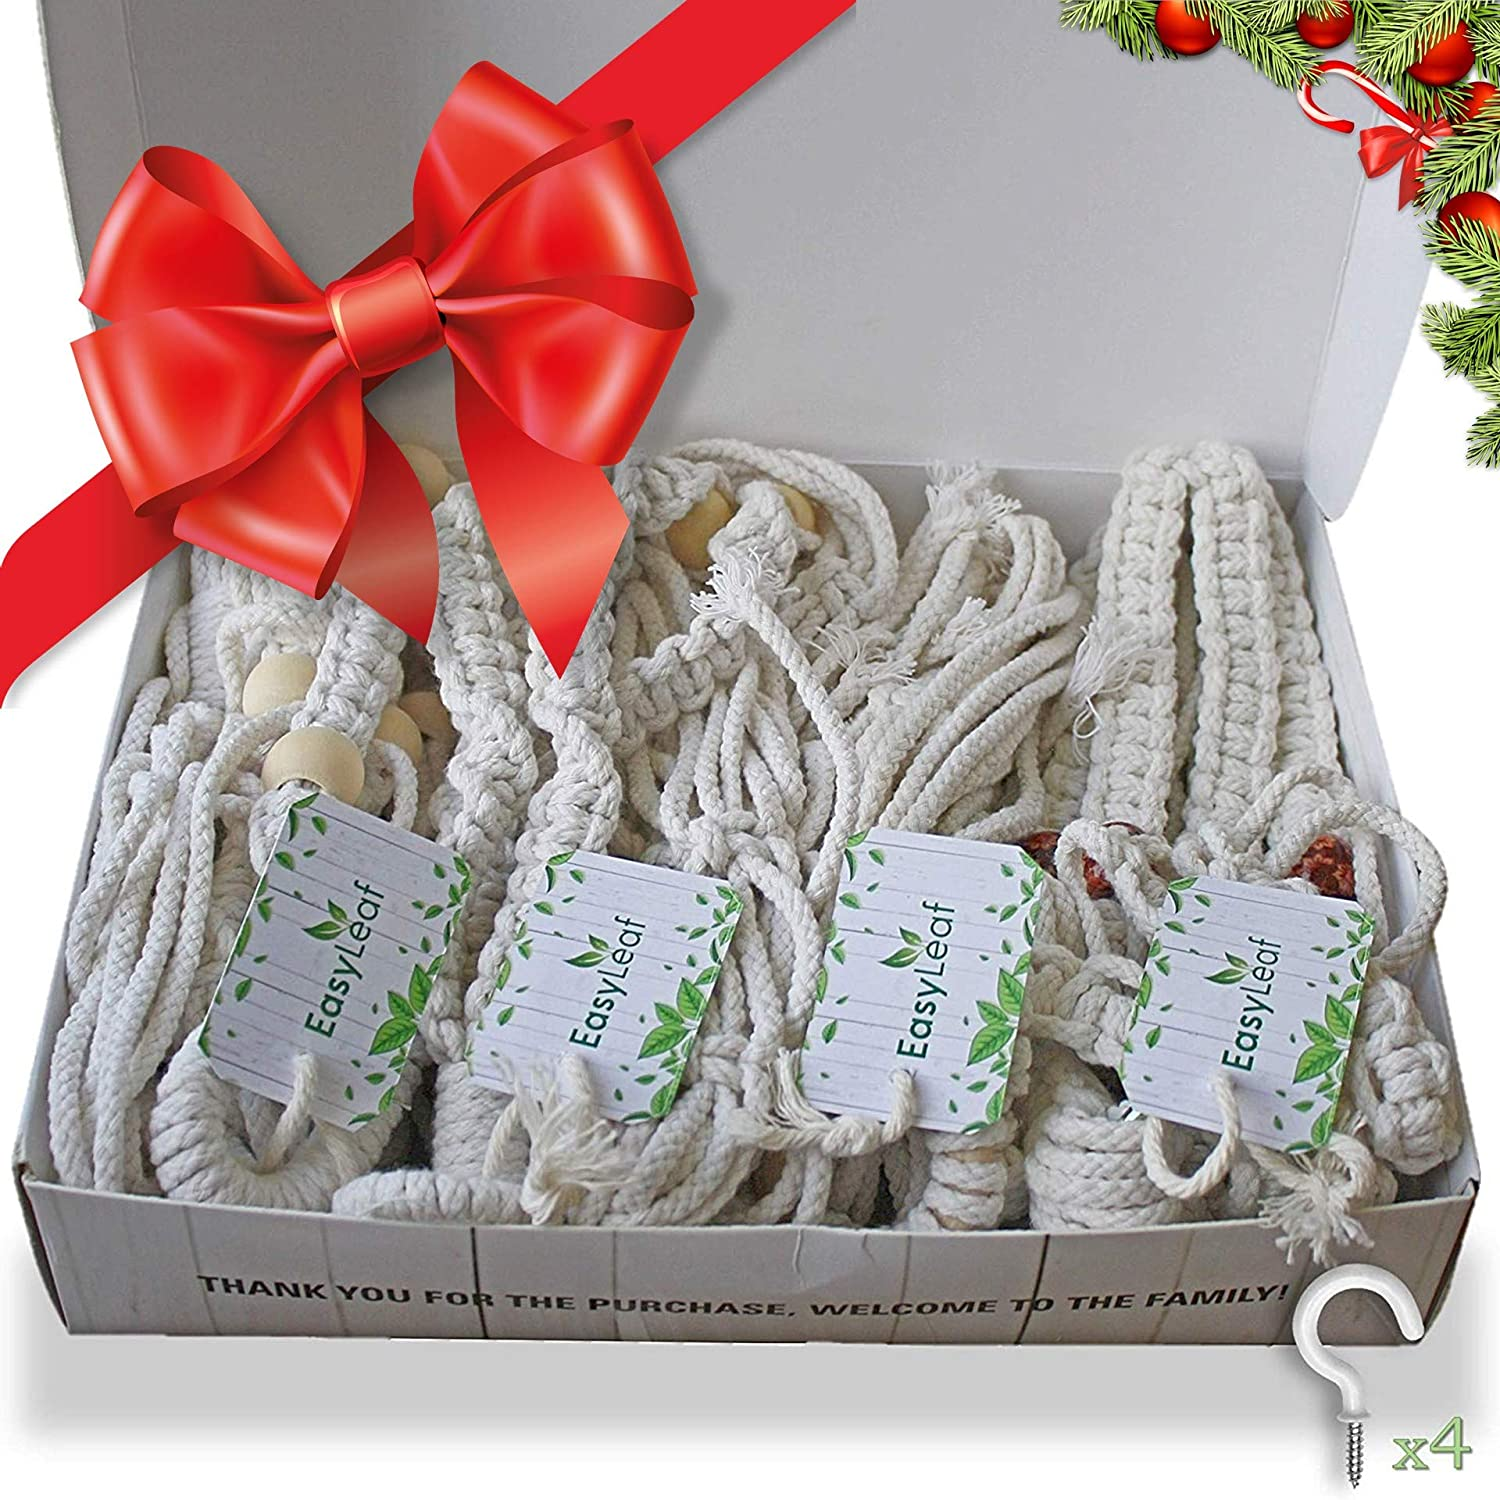 EasyLeaf 4-Pack Macrame Plant Hangers 4 Natural Cotton Hangers, 4 Ceiling Hooks, Gift-Ready Box for Plant Lovers Hanging Planters for Indoor Plants